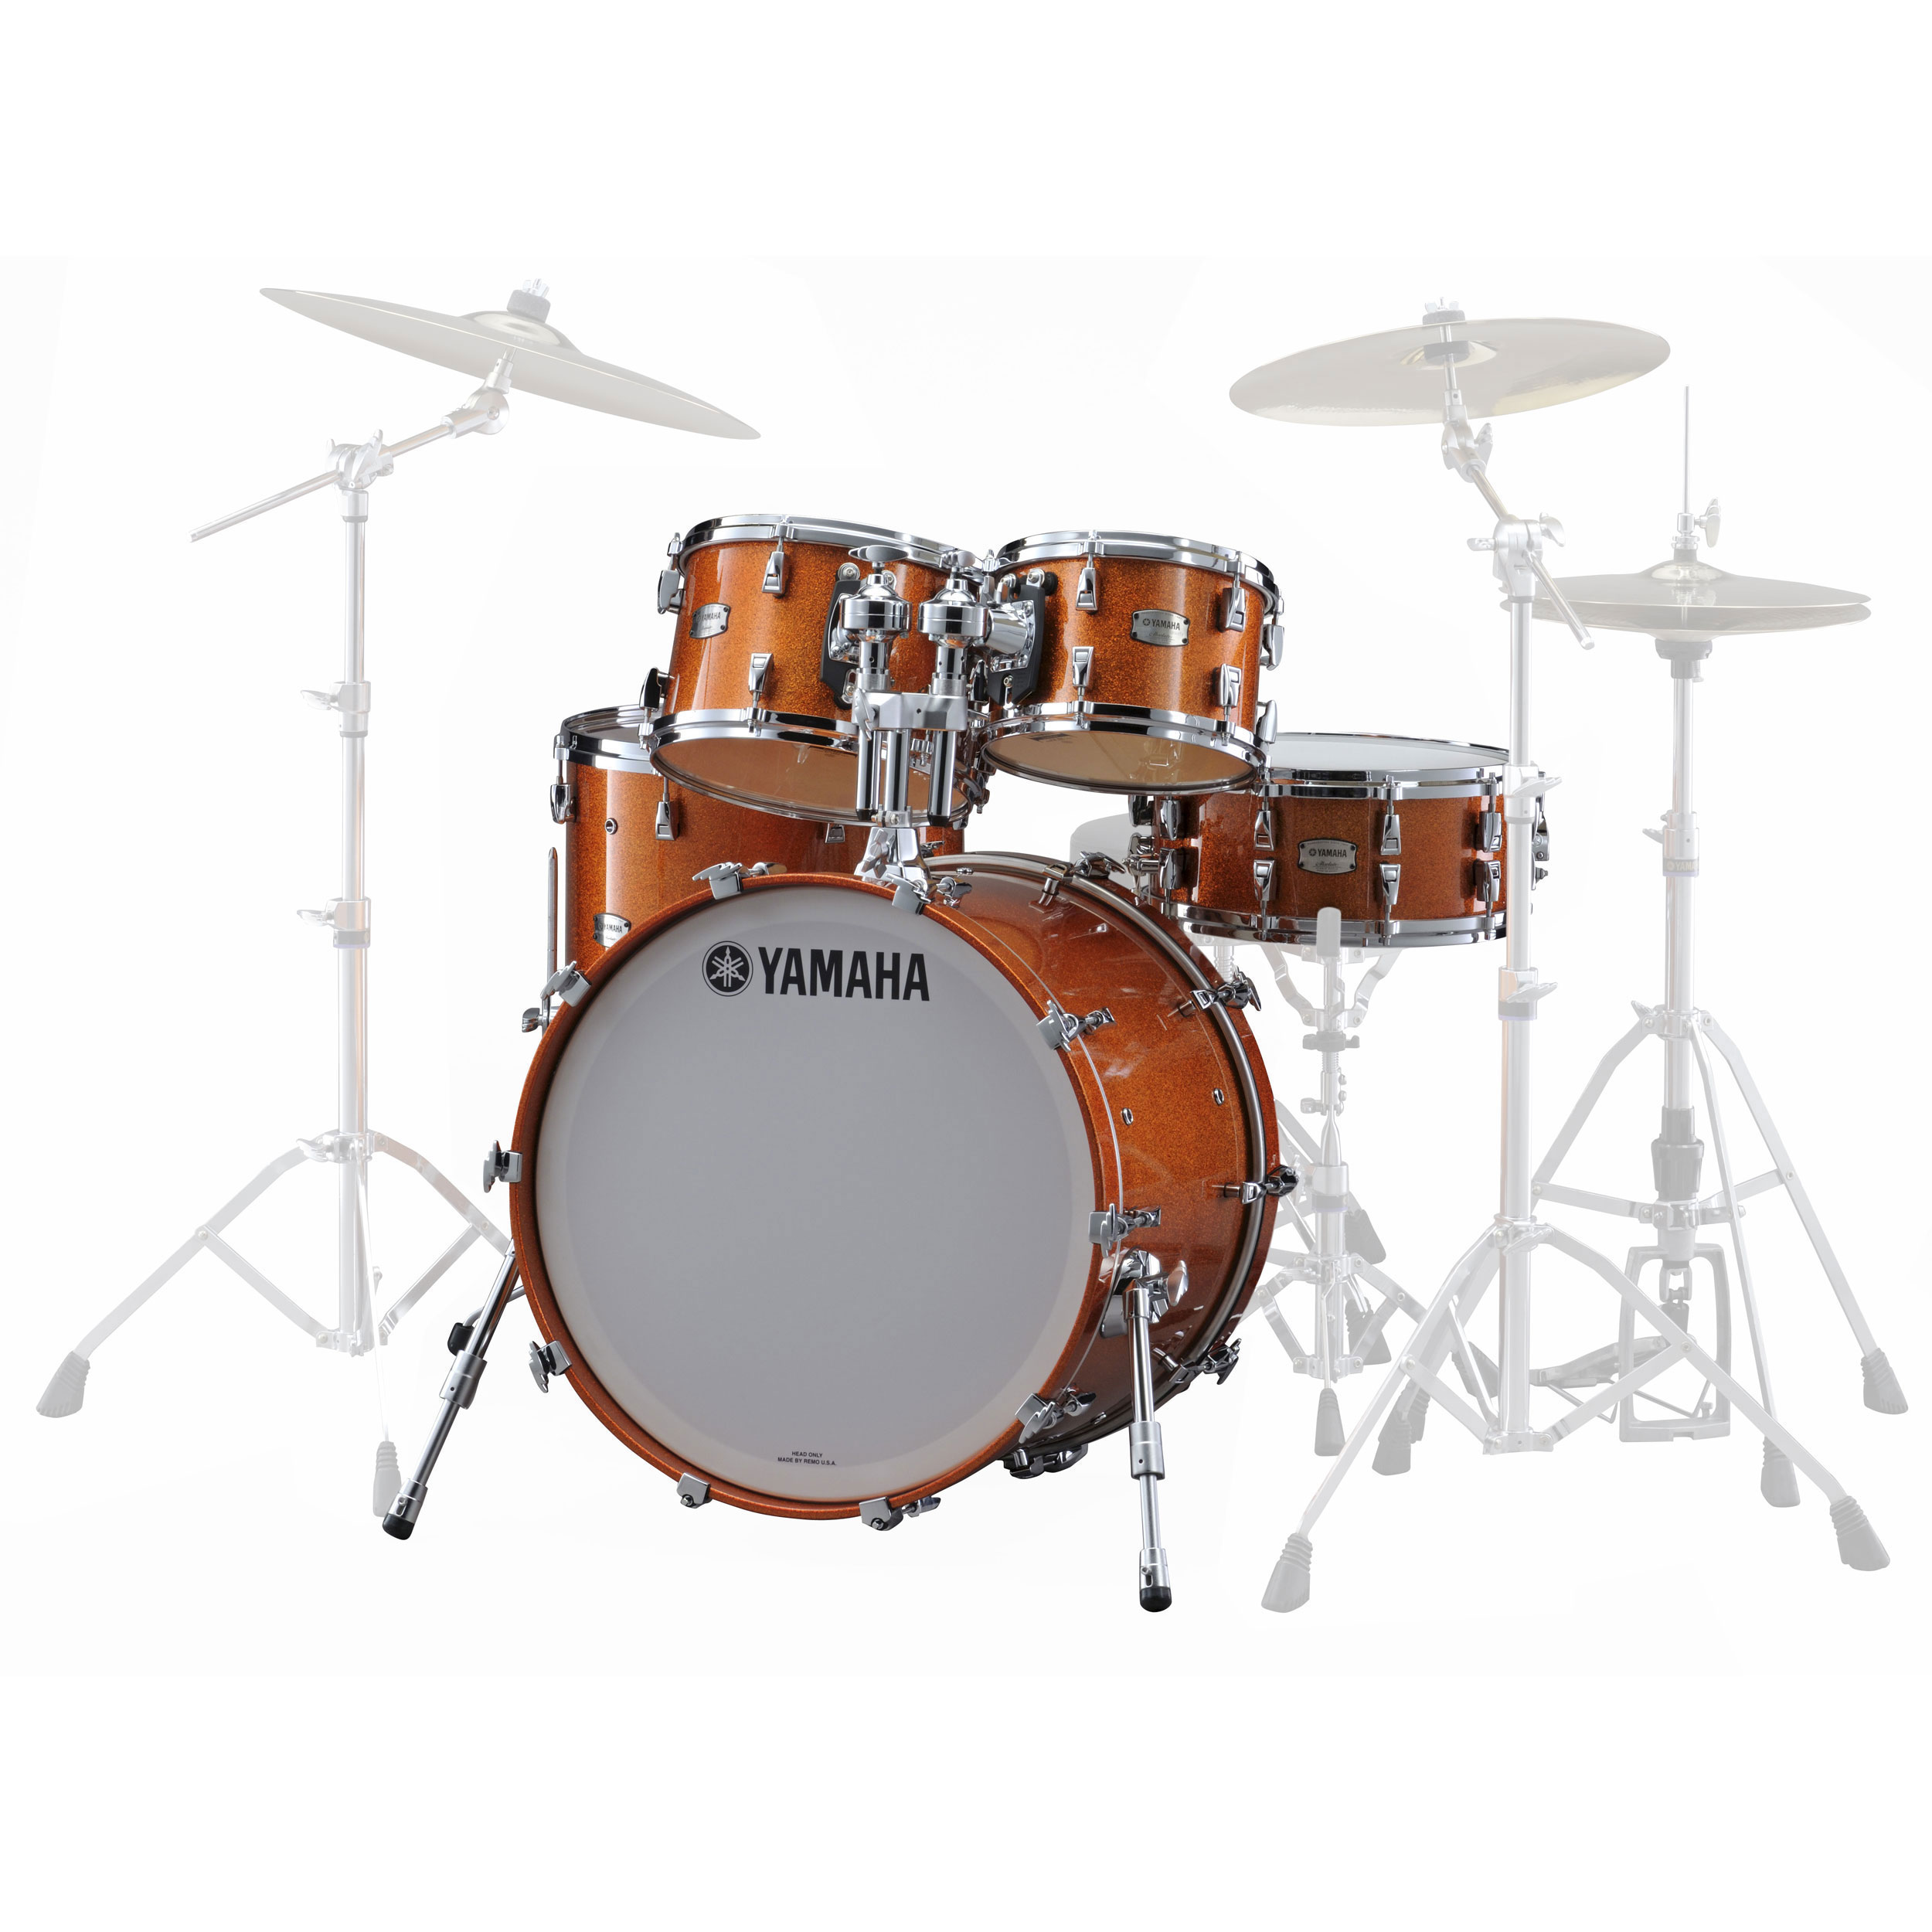 Alternate image for yamaha absolute hybrid maple 5 piece for Yamaha bass drum decal